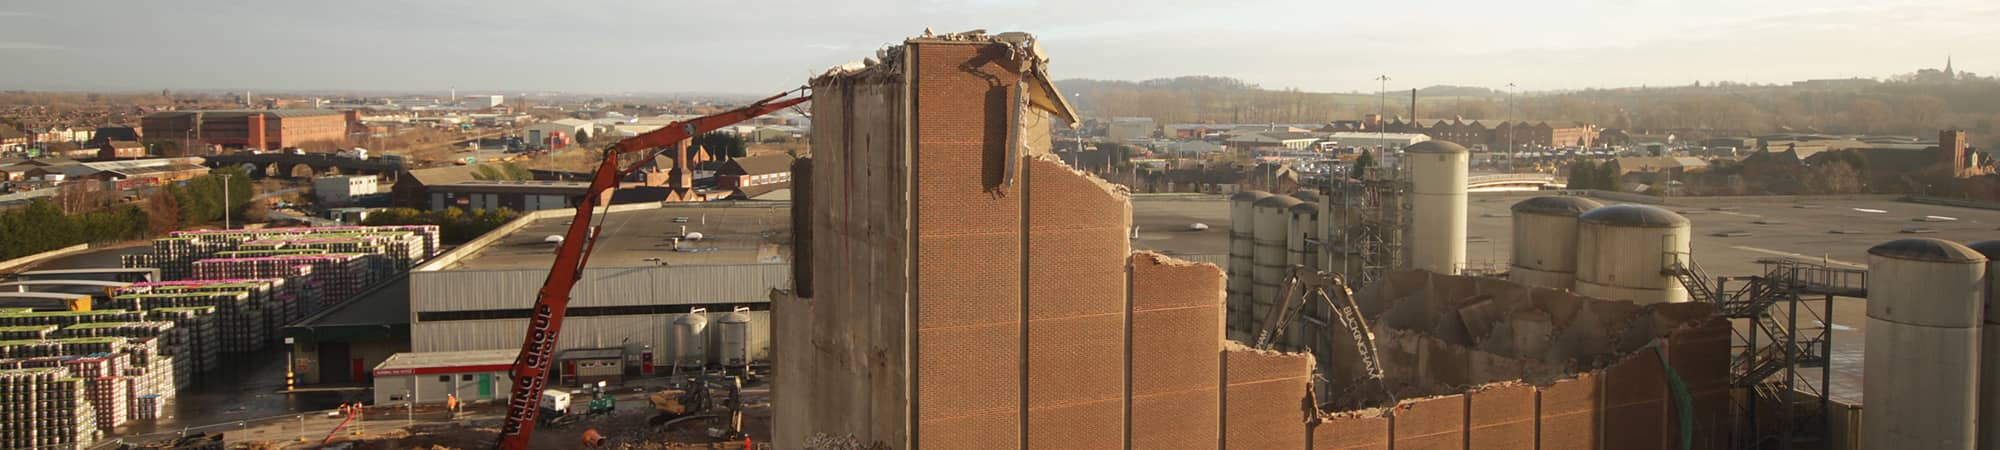 Demolition works at Molson Coors